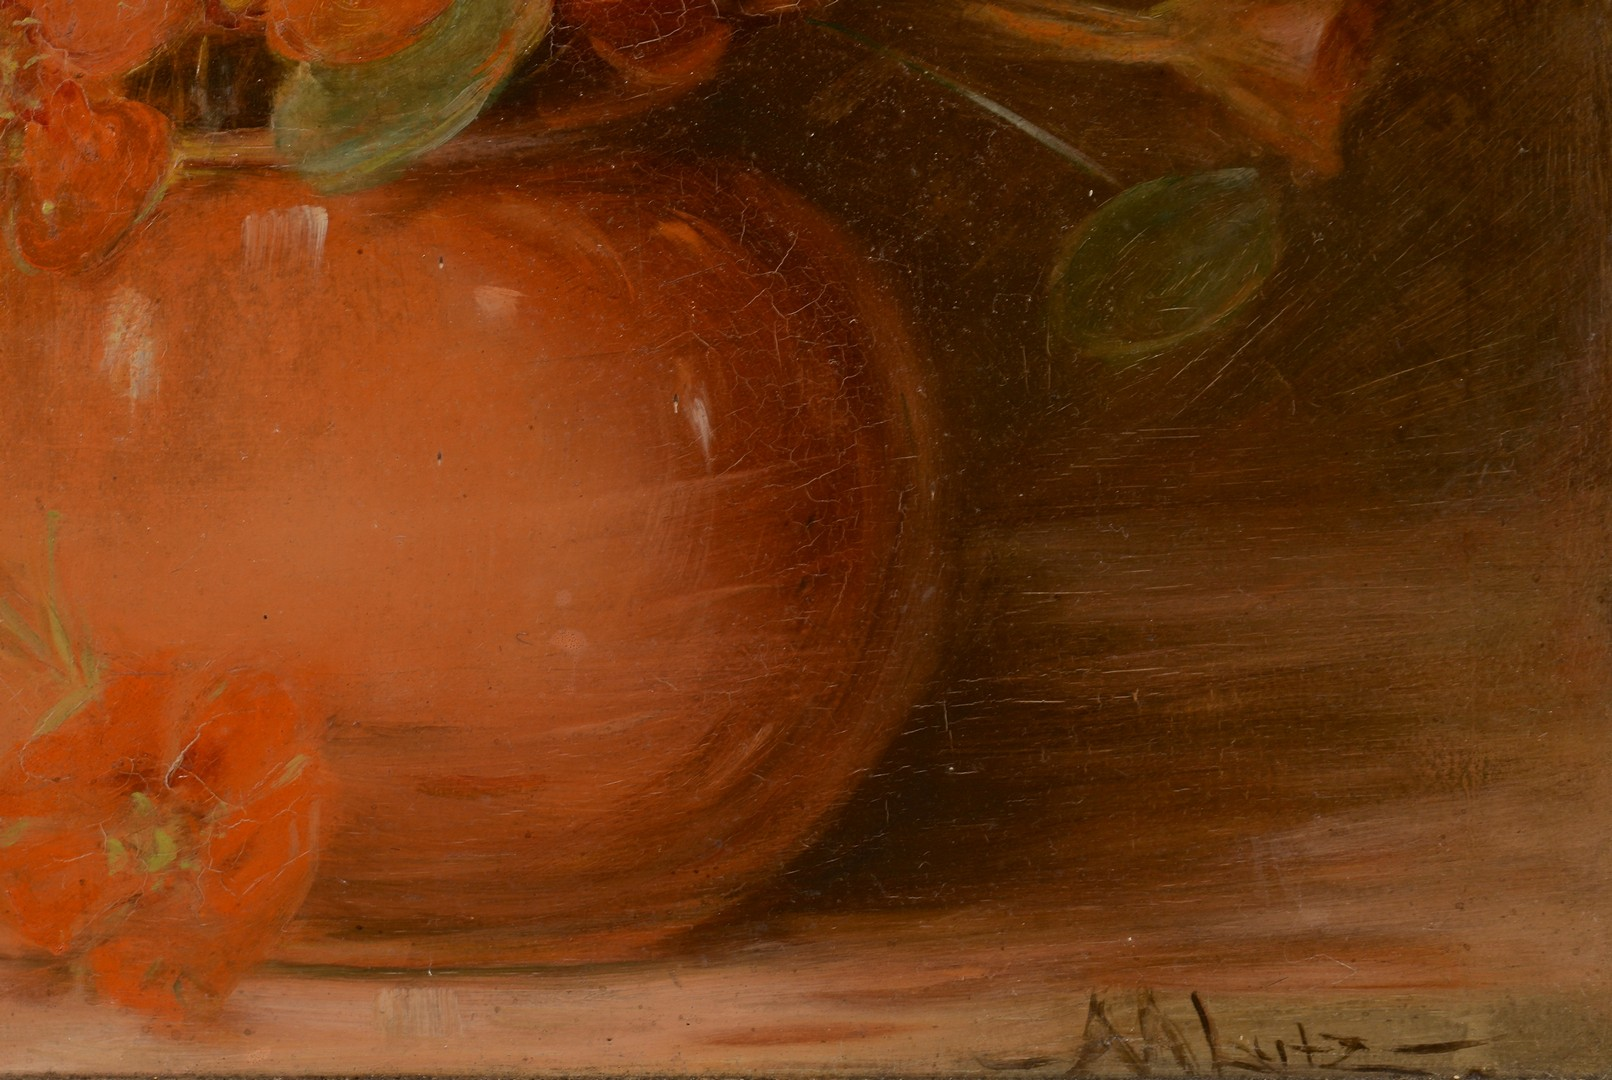 Lot 128: Adelia Armstrong Lutz floral still life